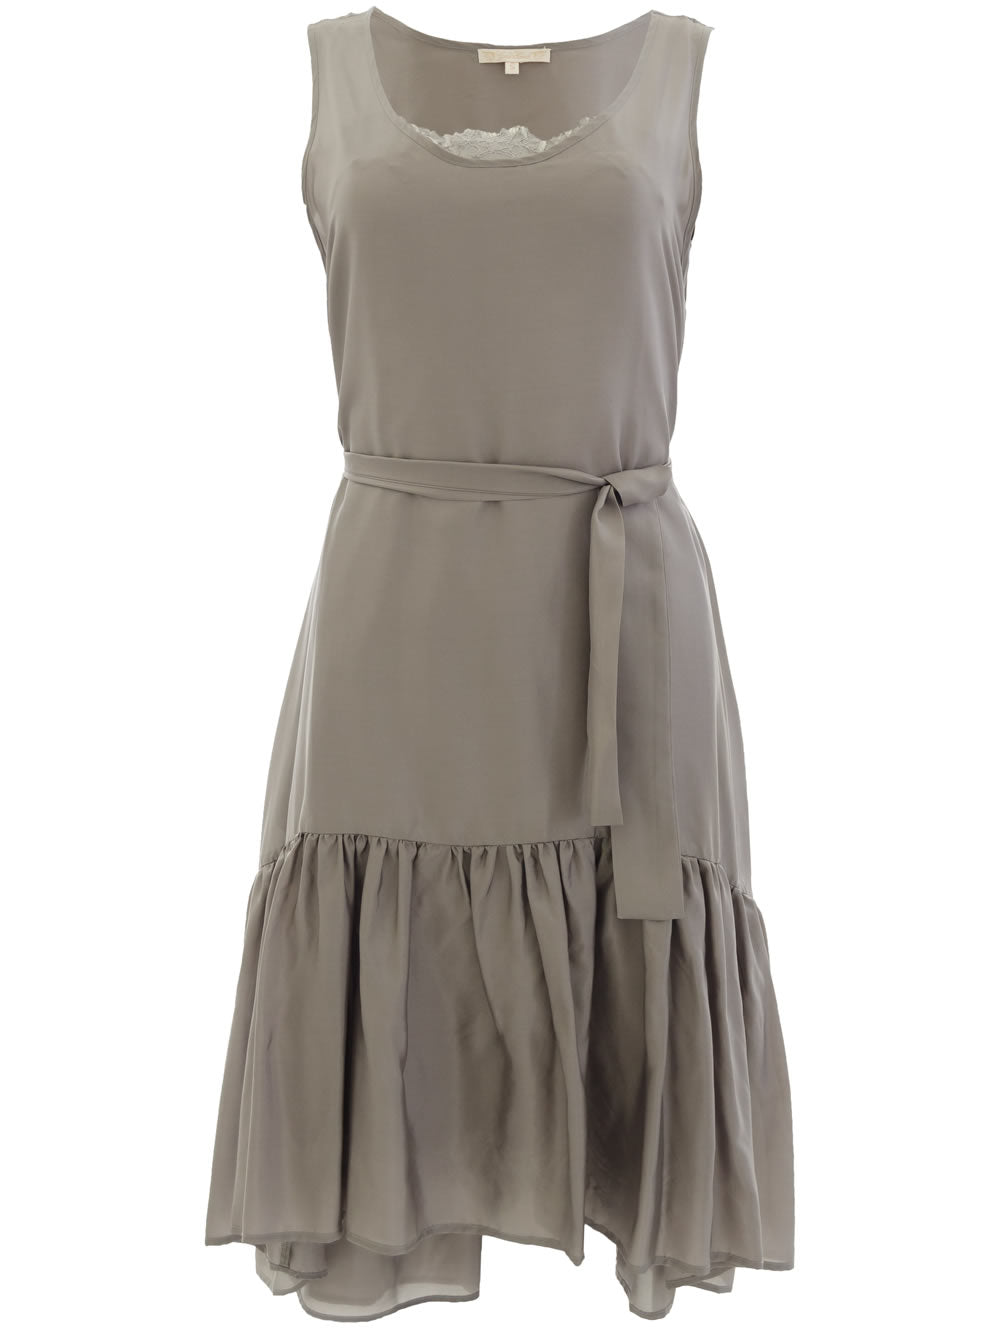 Habotai Silk Tank Dress - Steeple Grey